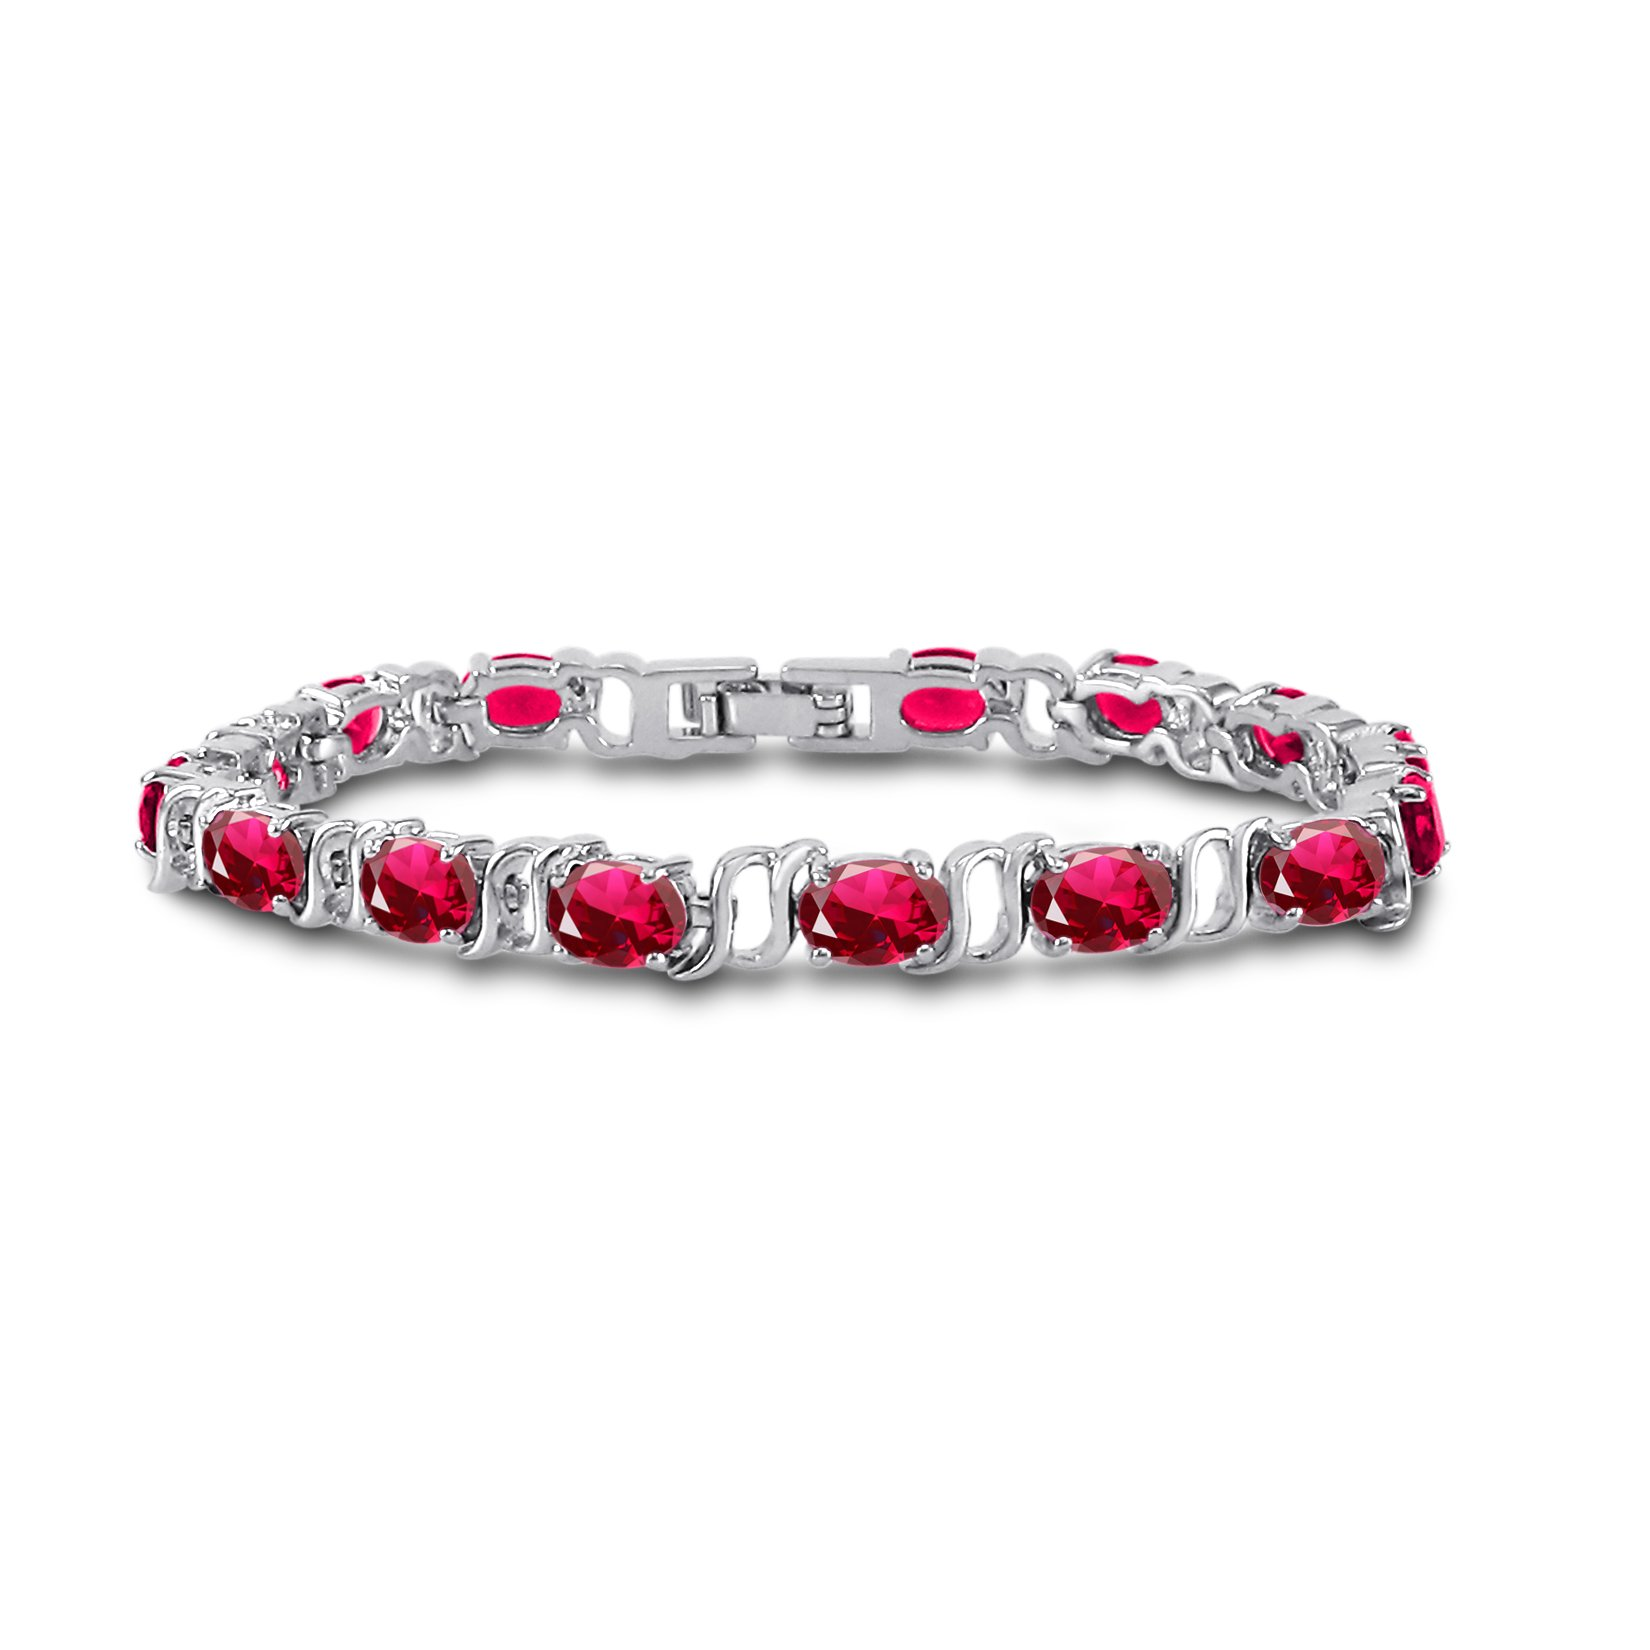 Silver Plated Brass Oval Cut Simulated Red Ruby Tennis Bracelet 7 inch